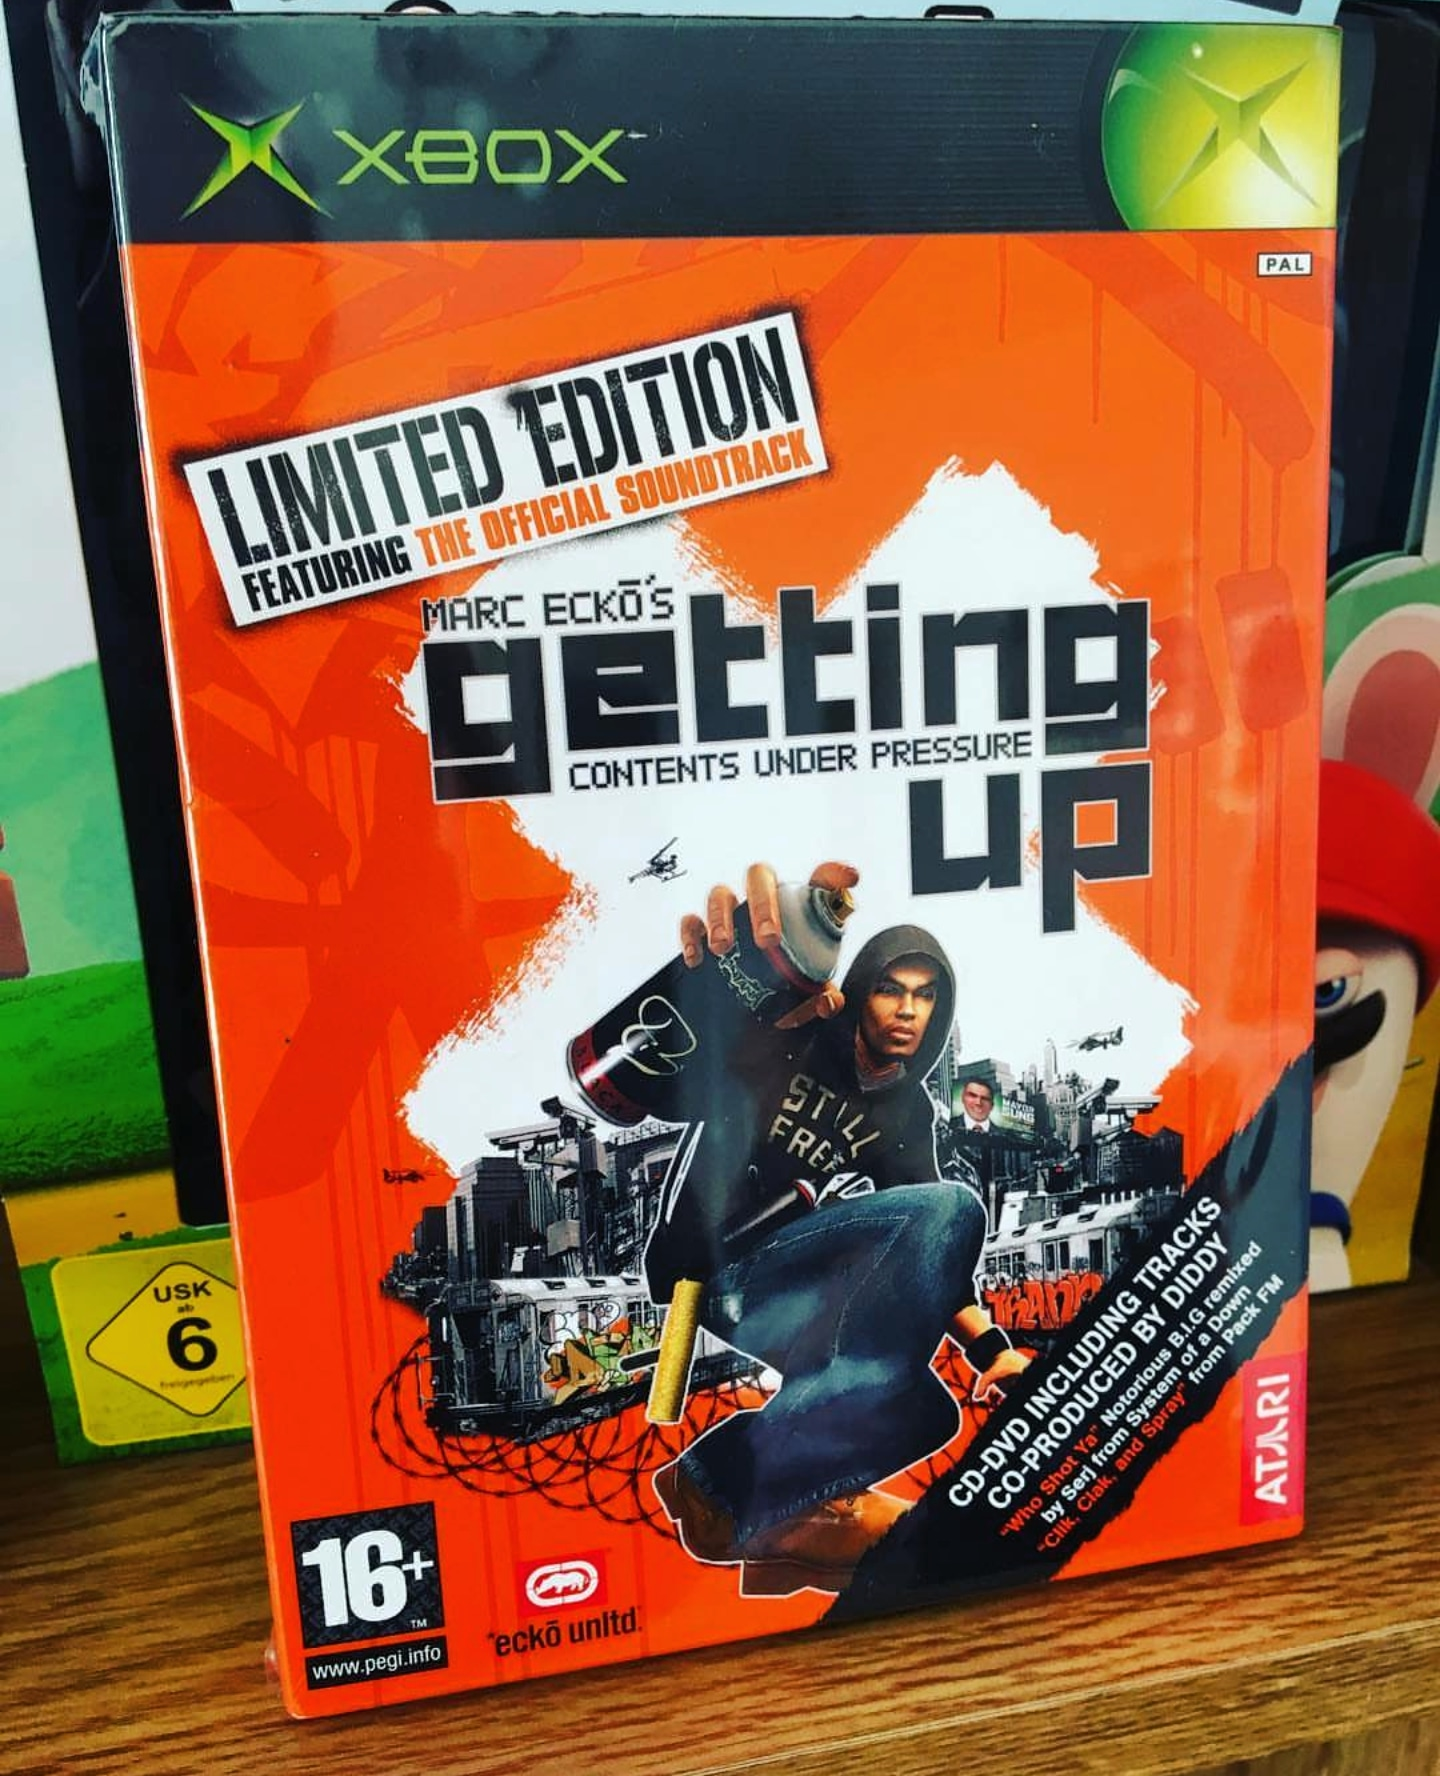 Getting Up: Contents Under Pressure (2005)